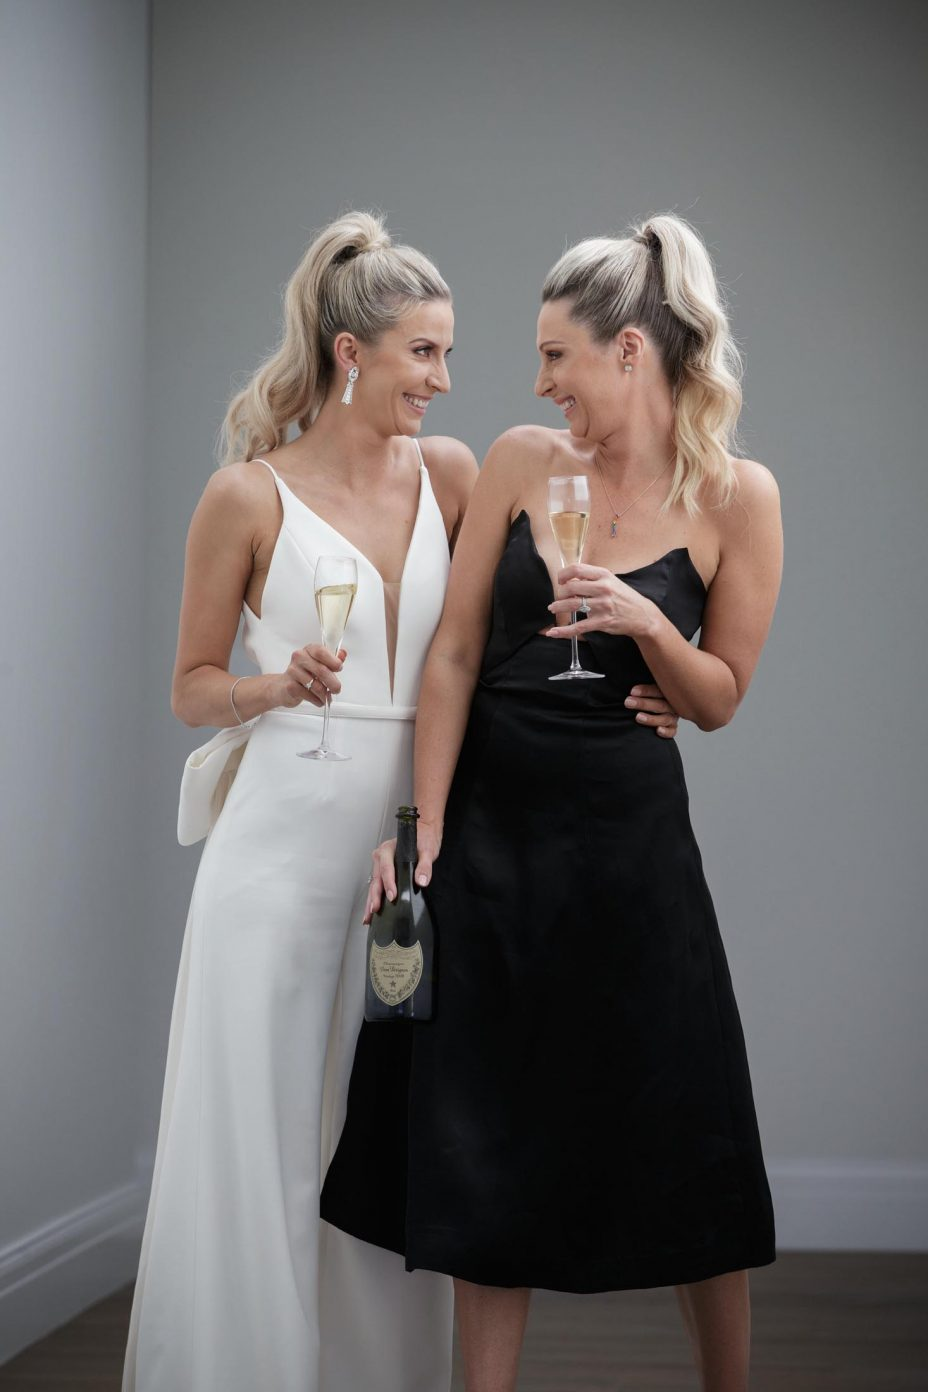 Cute slim bride wearing ivory pant suit and Mi Piaci cream leather boots with her bridesmaid in little black dress pose for fun champagne photo with a bottle of Dom Perignon at the wedding reception in The Northern Club Auckland